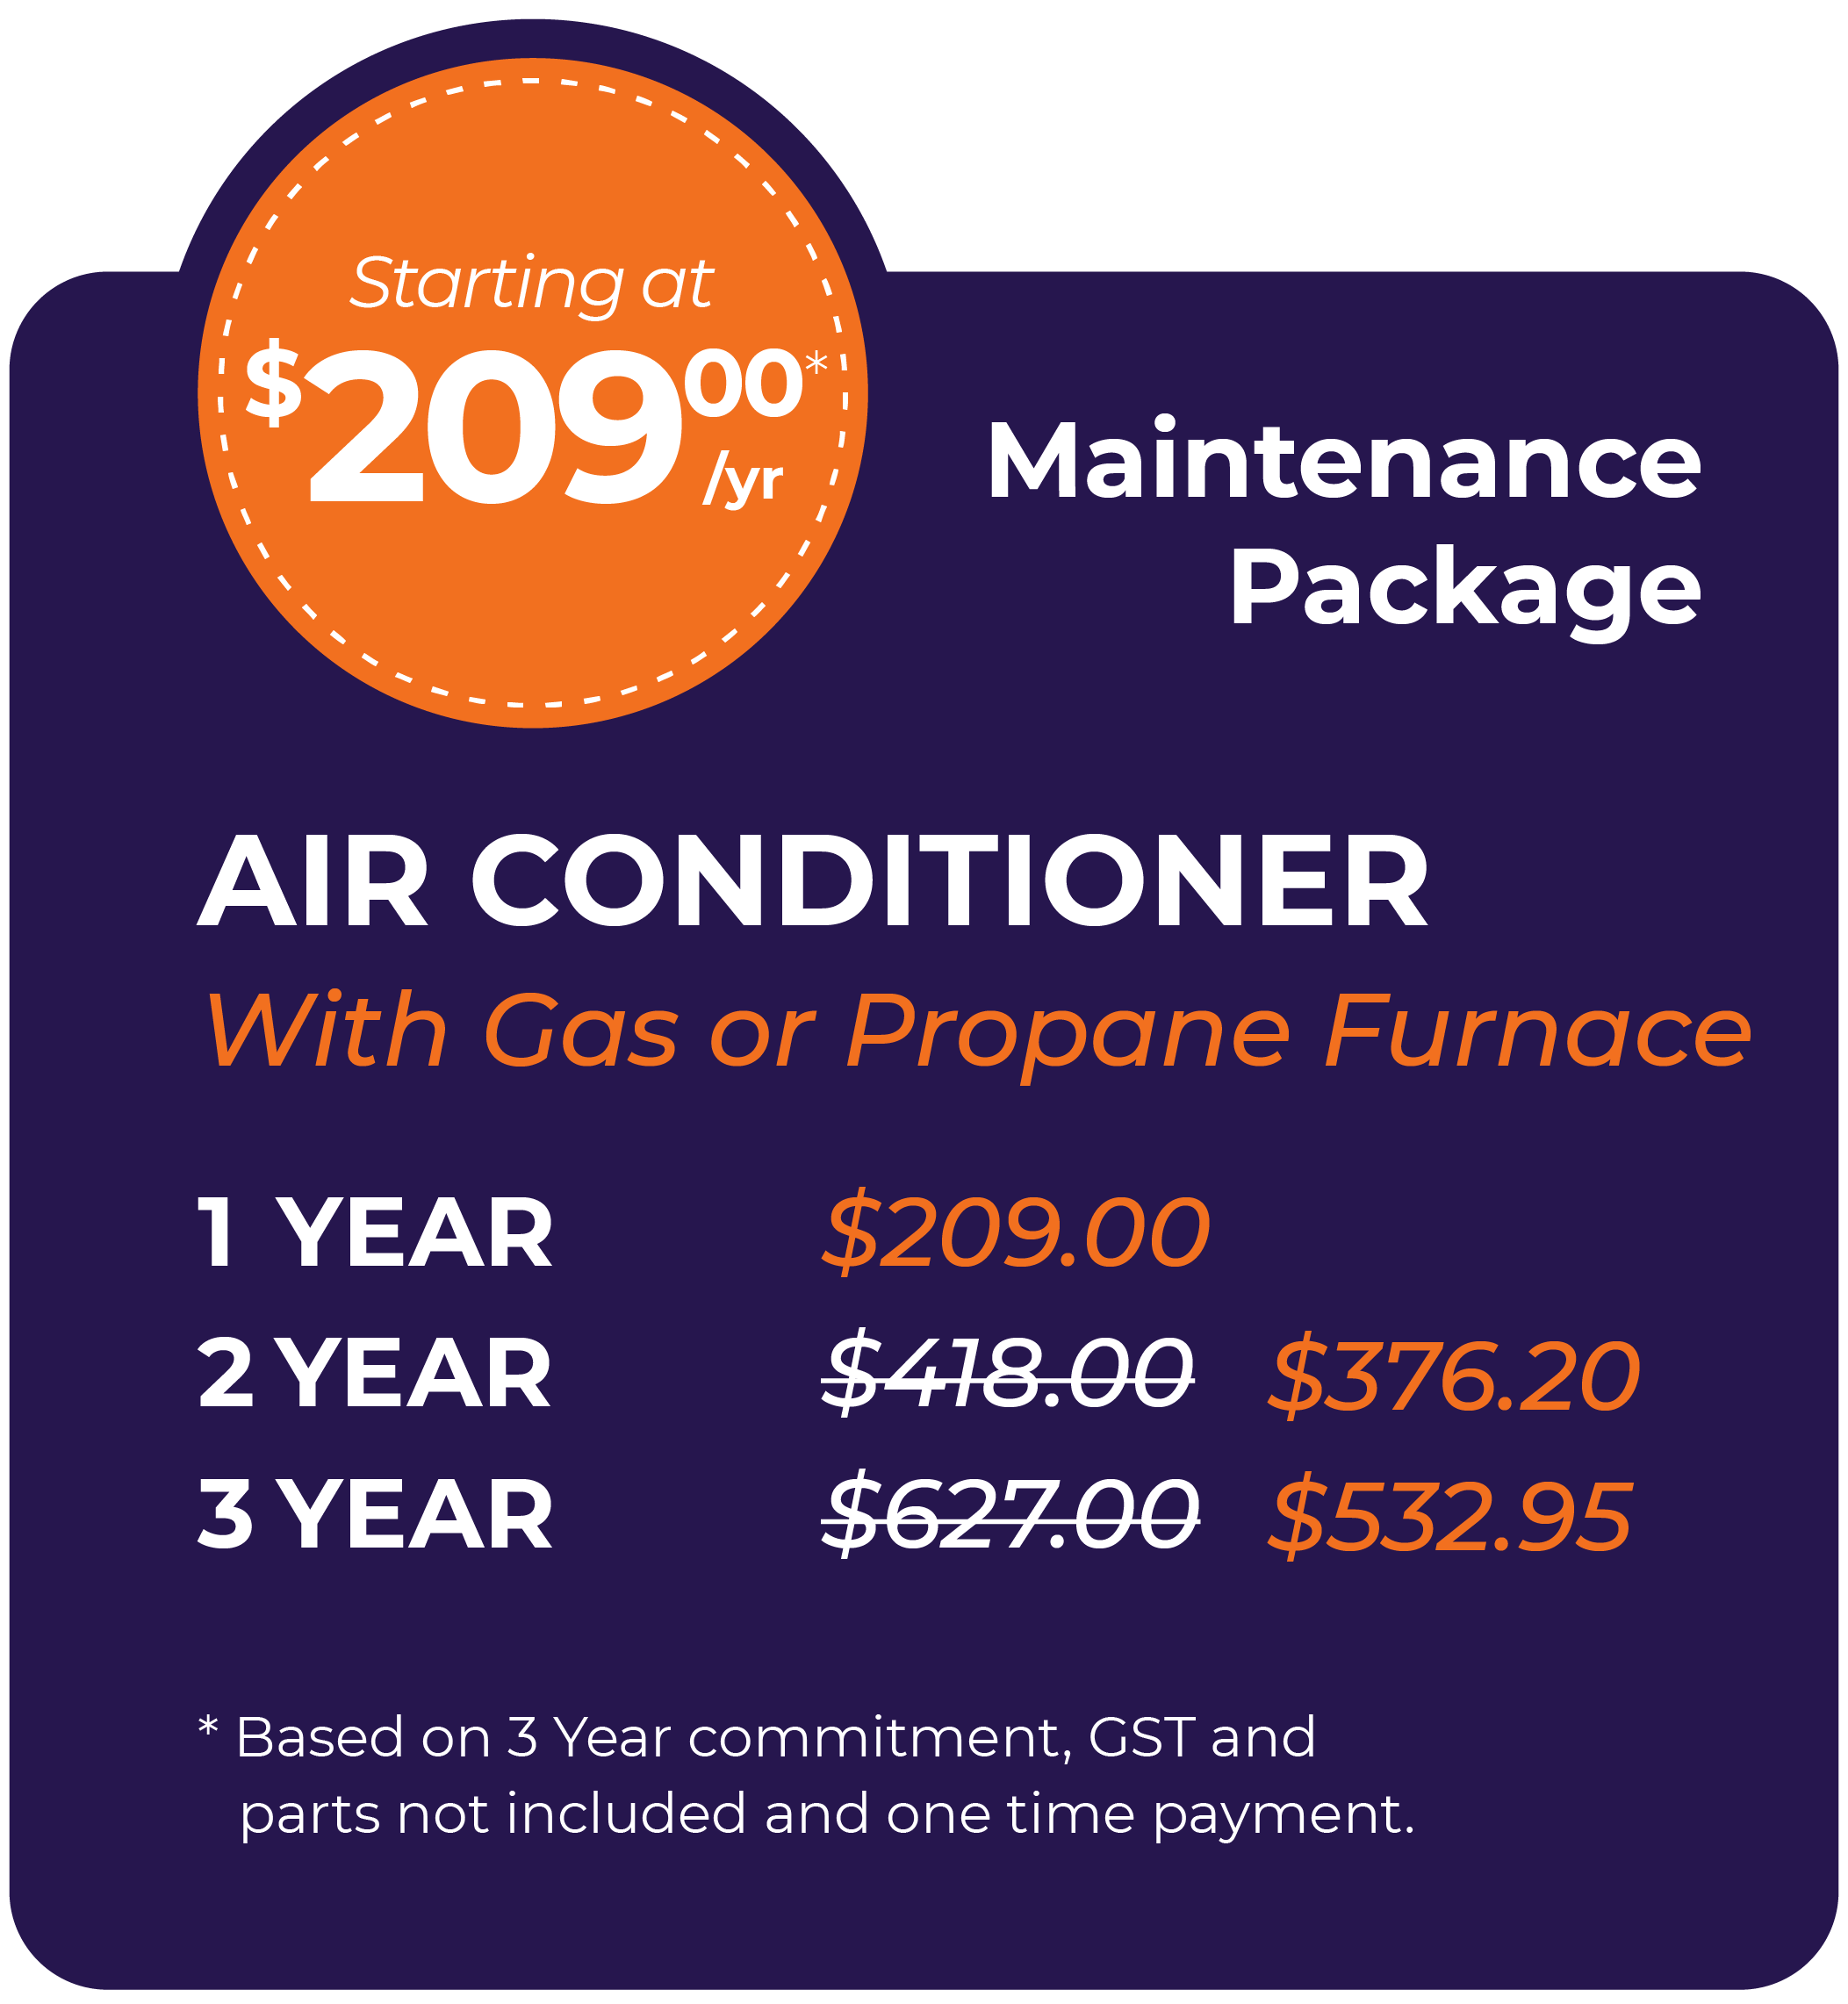 Air Conditioners with Gas or Propane Back-Up Maintenance Package